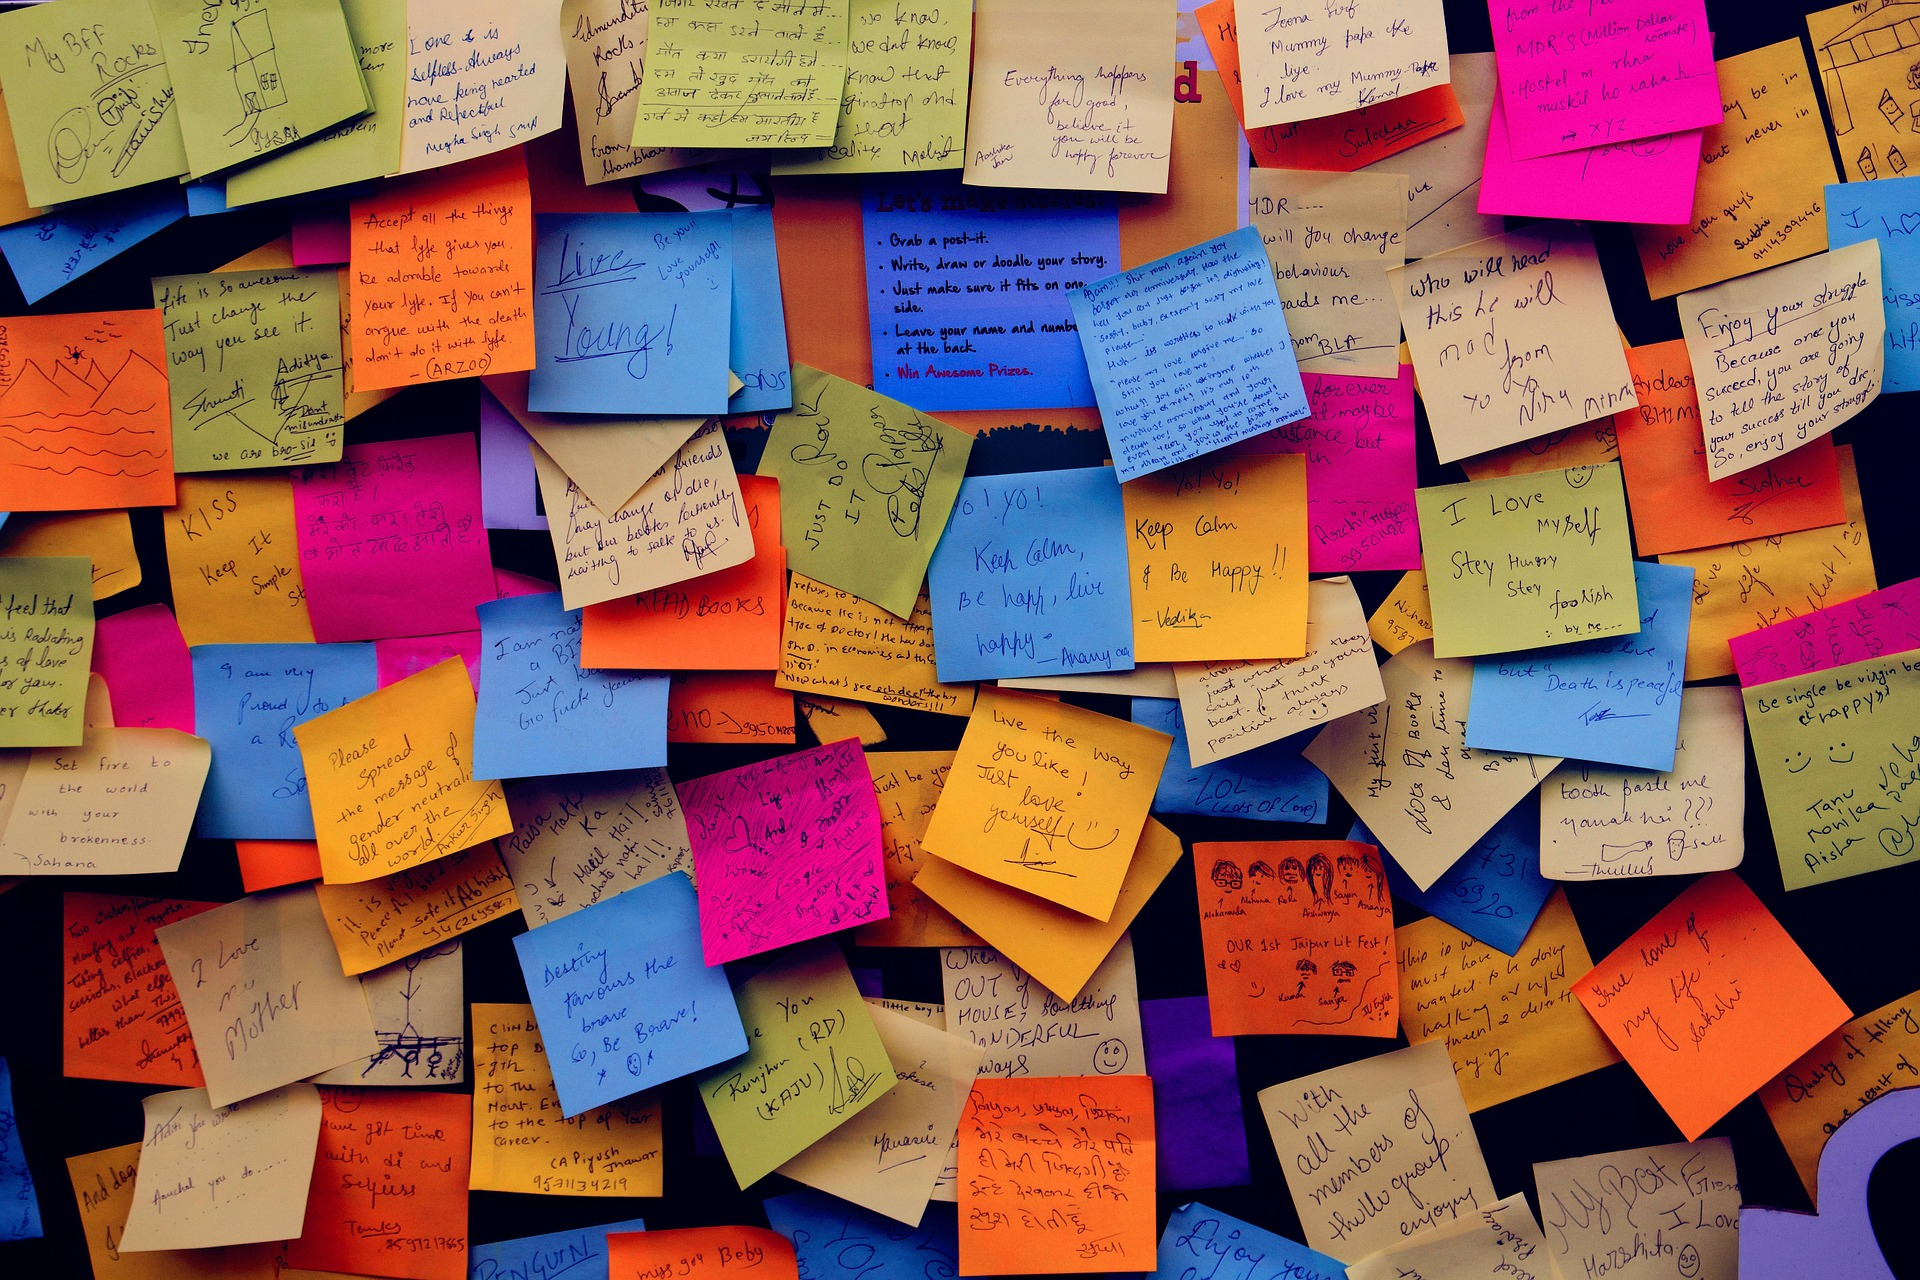 post-it-notes-1284667_1920.jpg